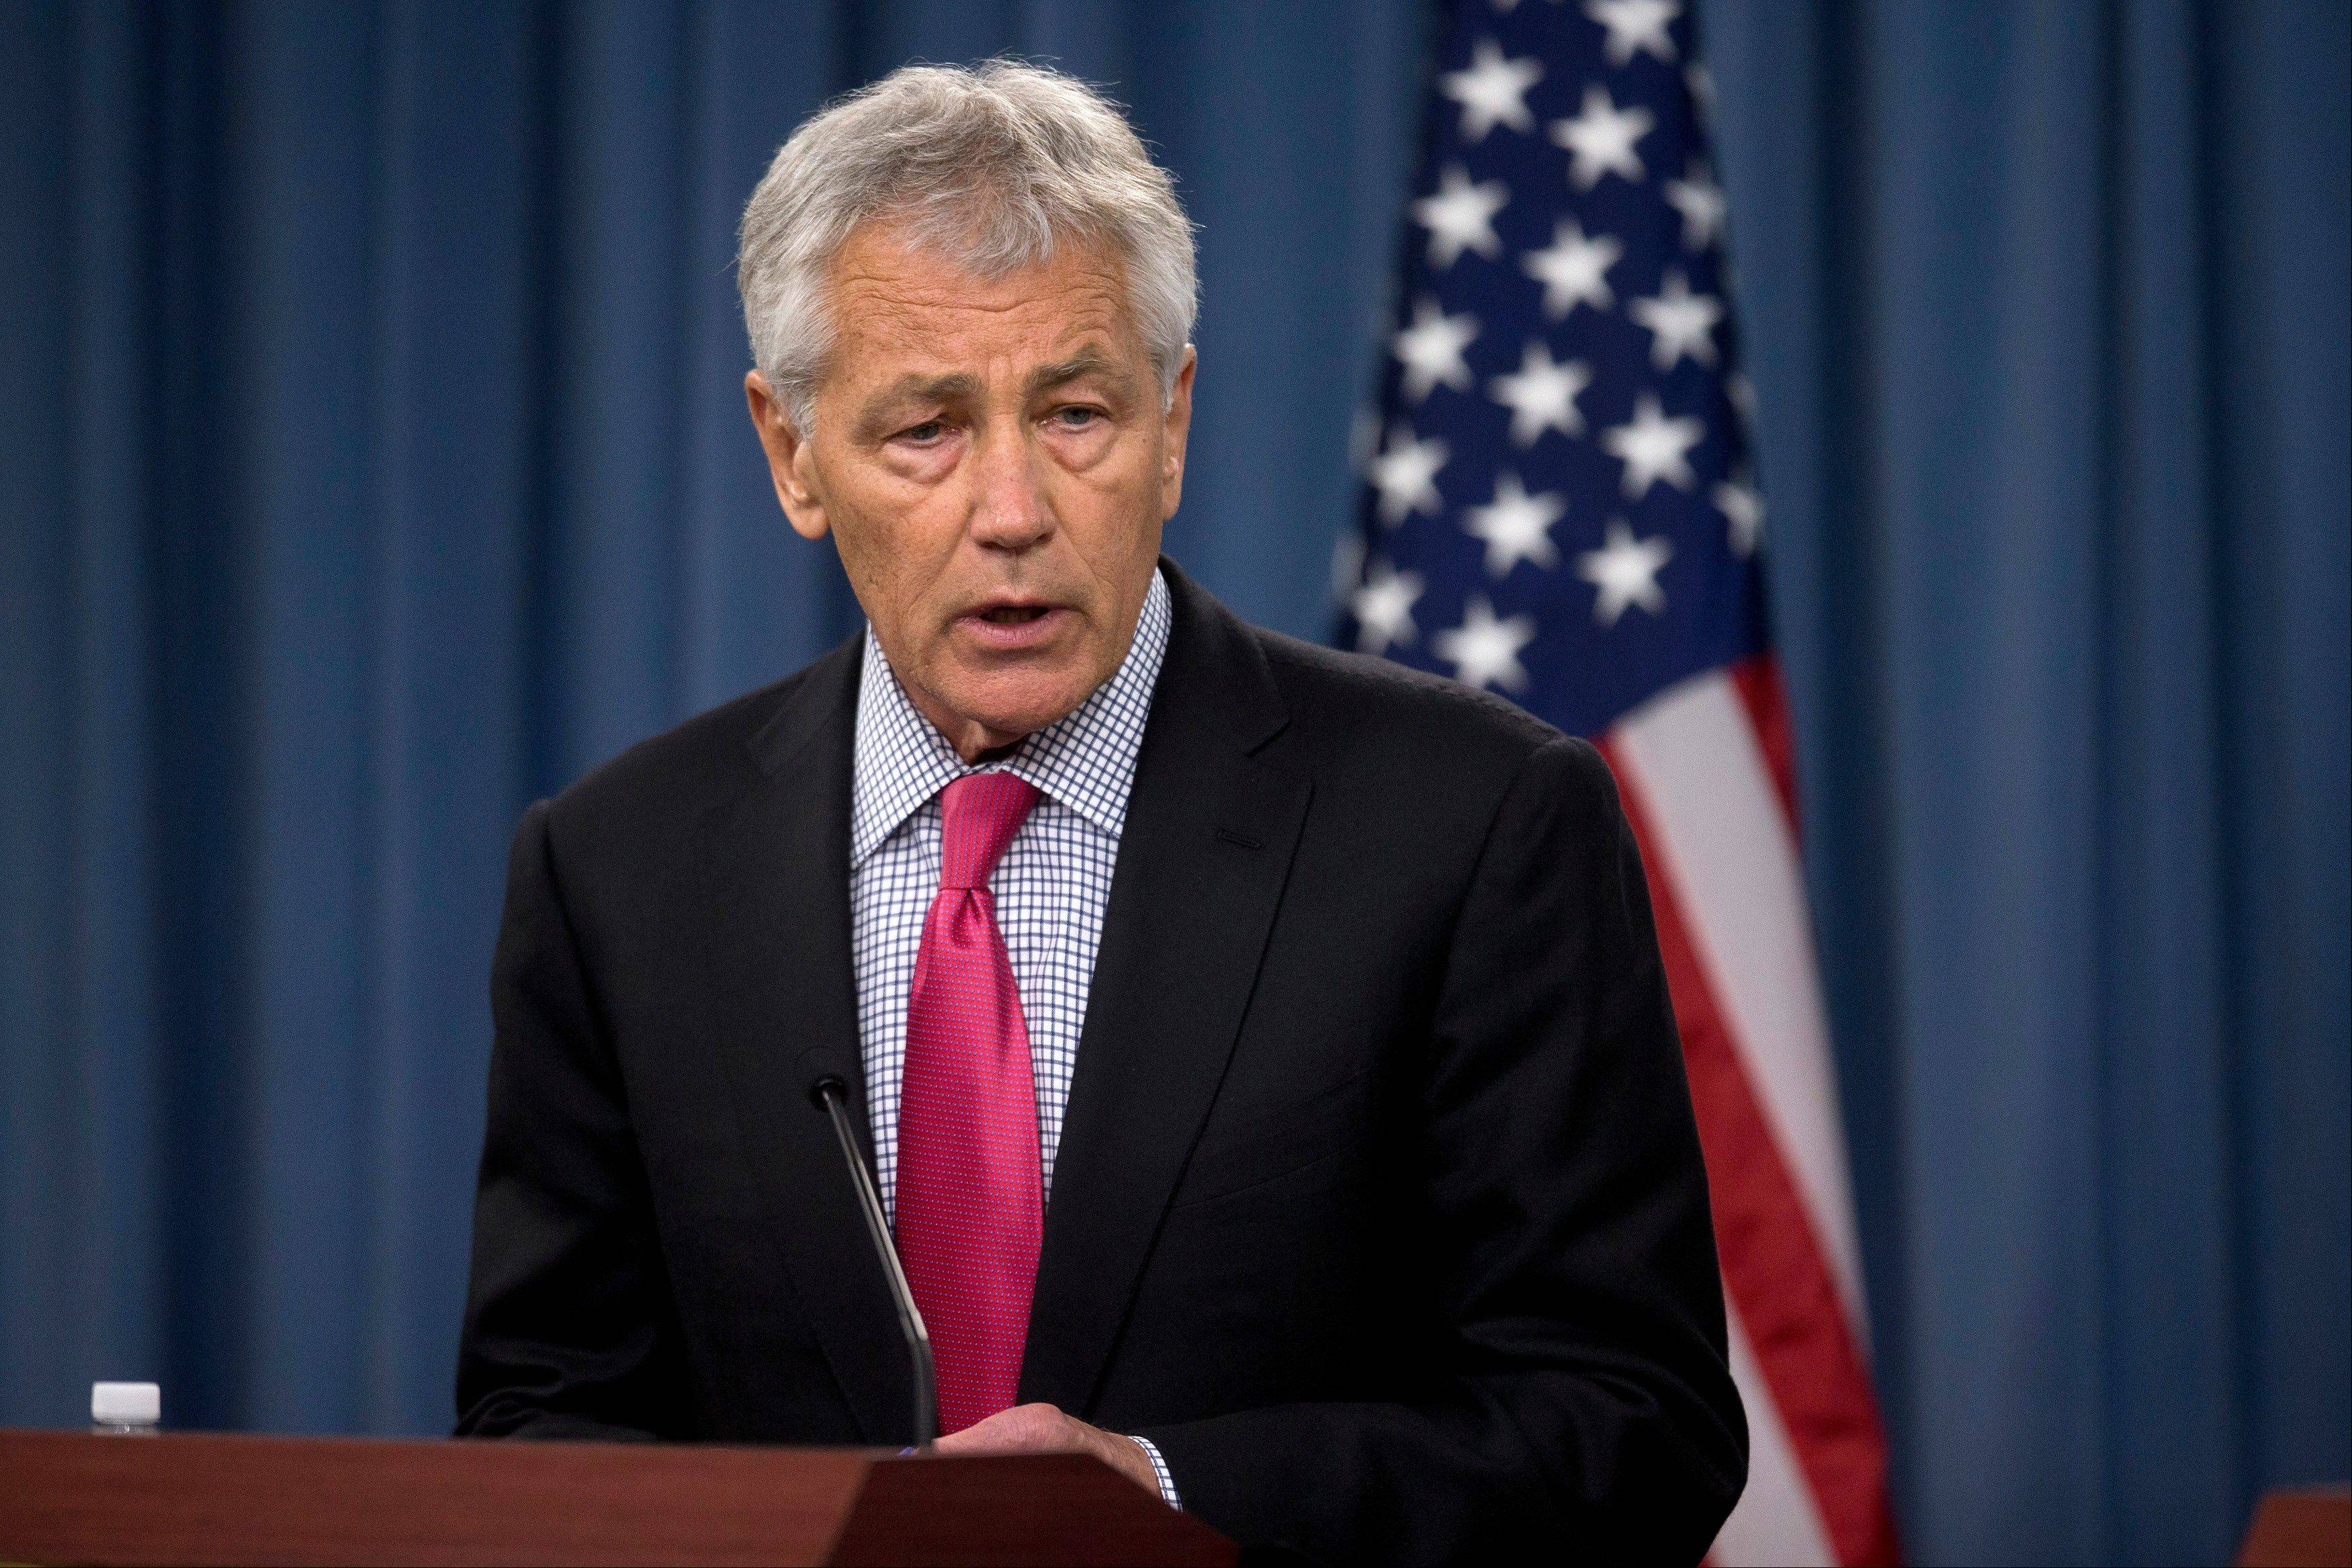 Defense Secretary Chuck Hagel said he was directing all the services to retrain, re-credential and rescreen all sexual assault prevention and response personnel and military recruiters, his spokesman, George Little, said after Tuesday's announcement that a sergeant first class at Fort Hood, Texas, was accused of pandering, abusive sexual contact, assault and maltreatment of subordinates.